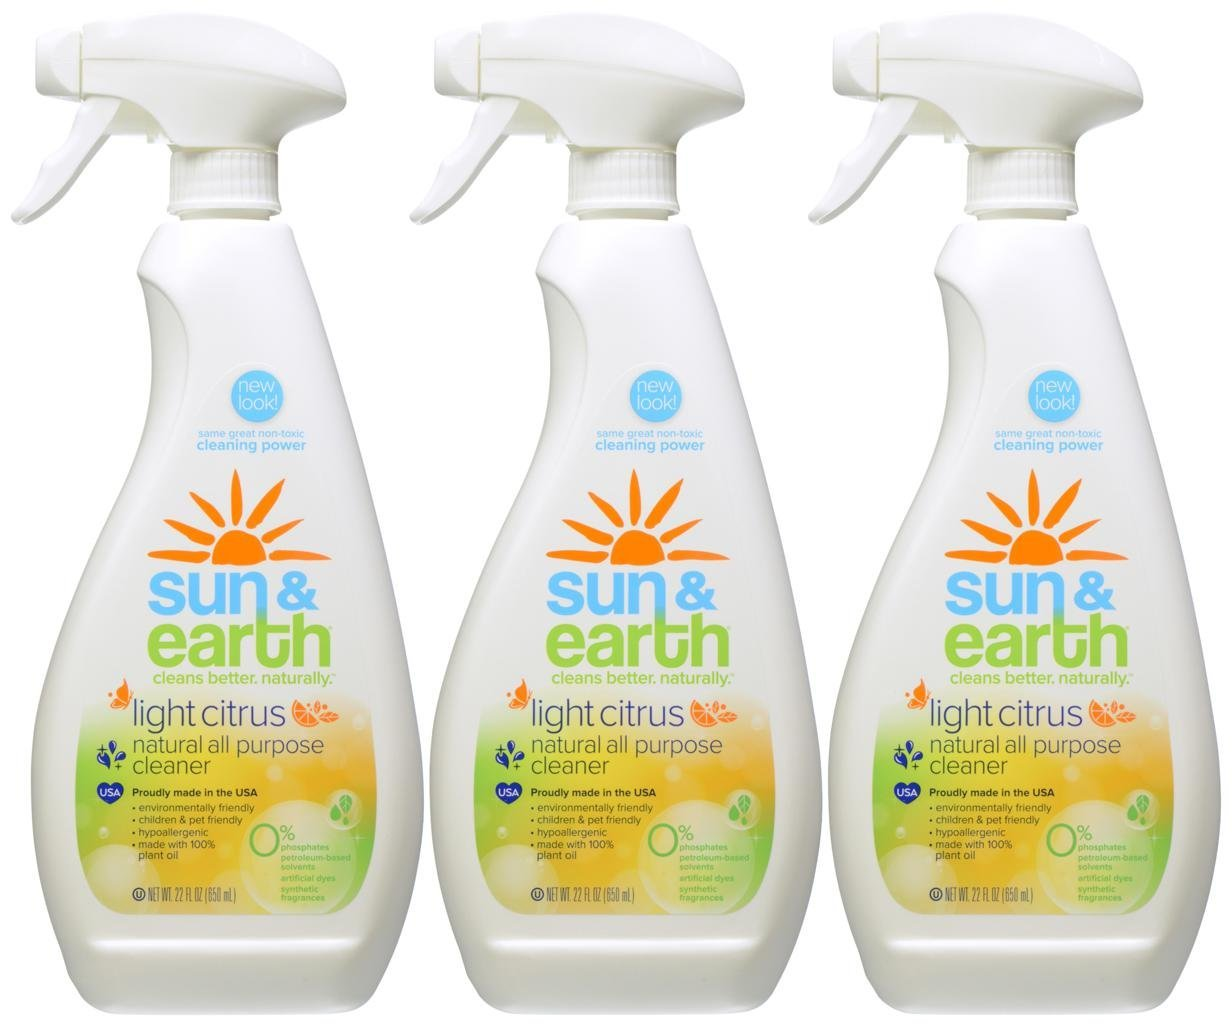 Natural All-Purpose Cleaner - Light Citrus Scent - Non-Toxic, Plant-Based, Hypoallergenic - 22 Ounce Spray Bottle (Pack of 3) by Sun & Earth (Image #1)